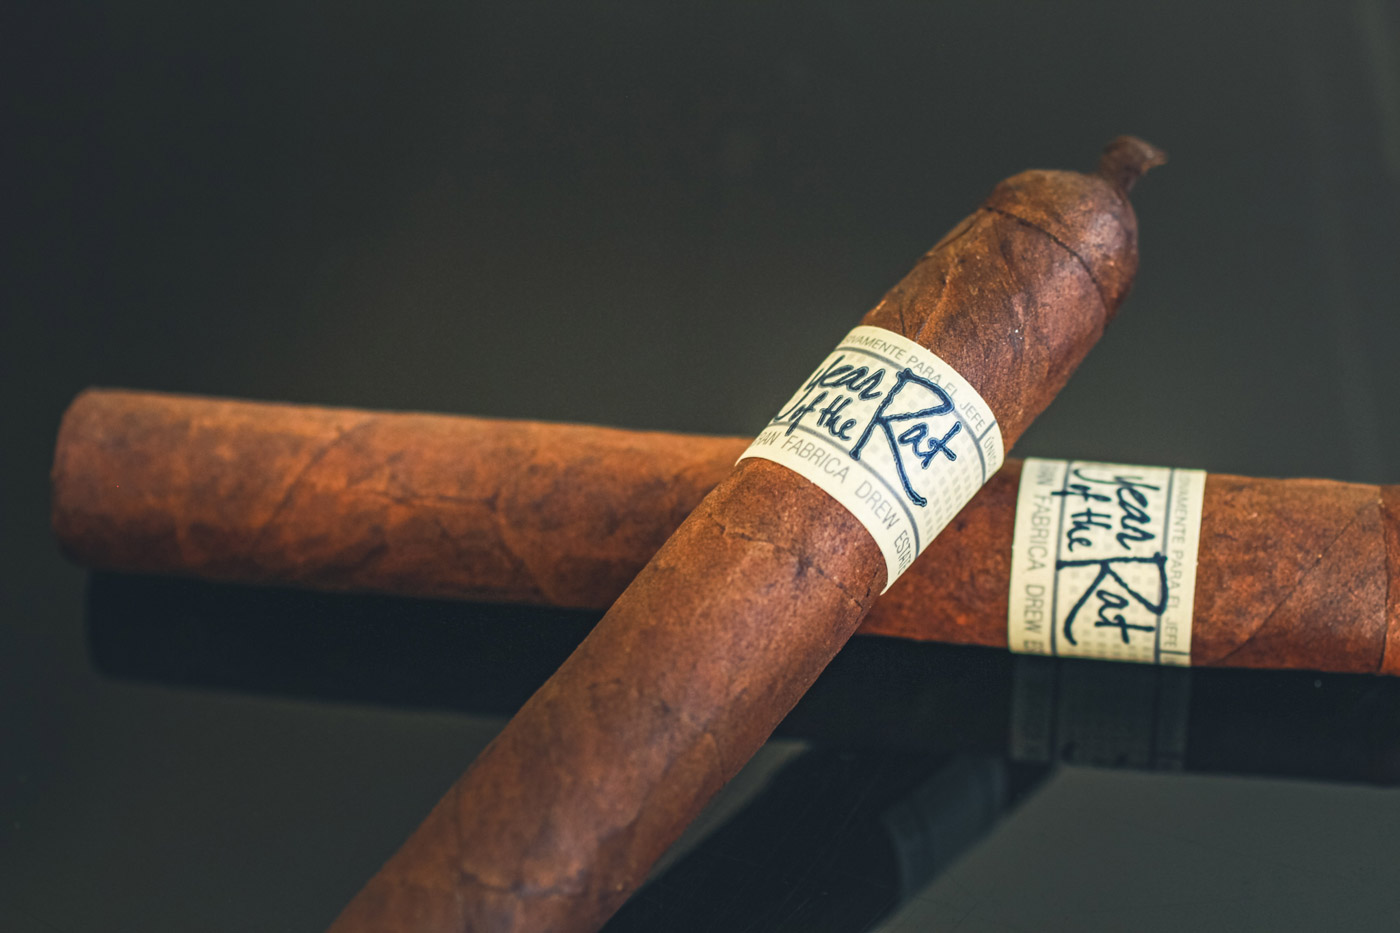 Drew Estate Liga Privada Único Serie Year of the Rat cigar review